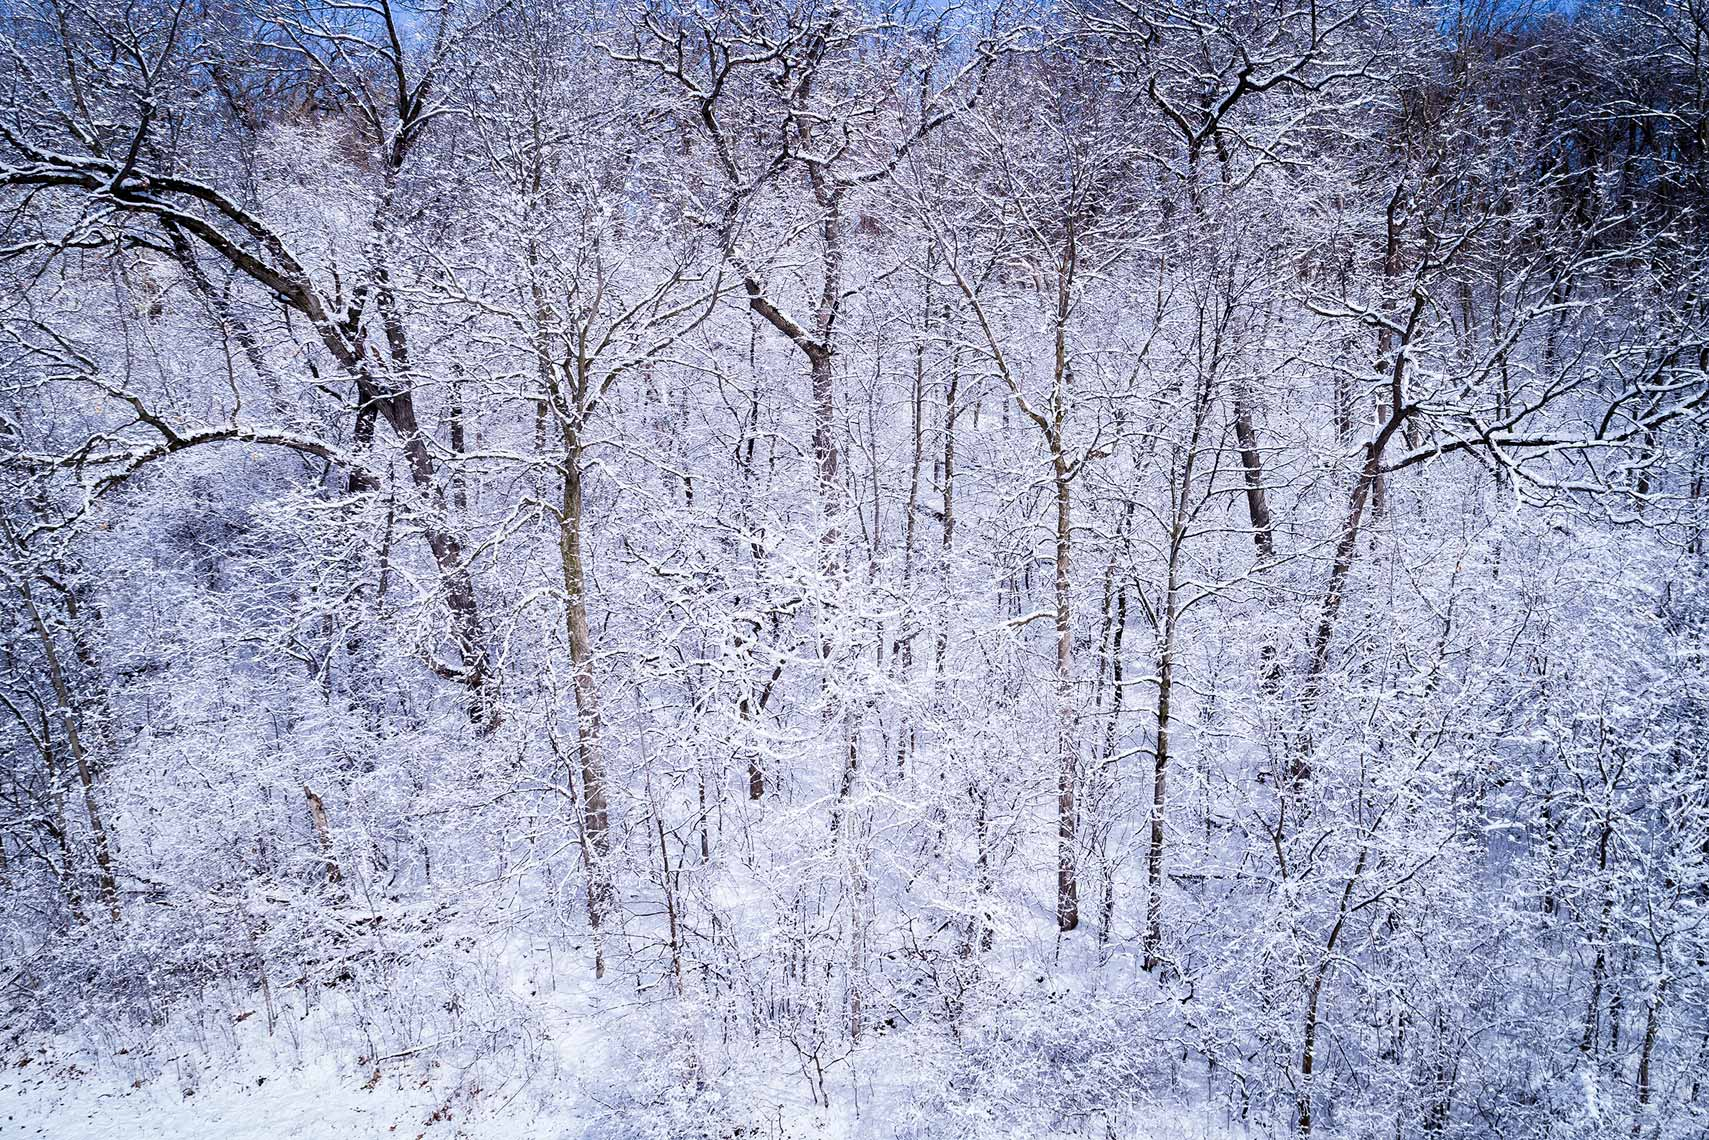 DJI_0005EarlySpringSnow-Covered-TreesWEB